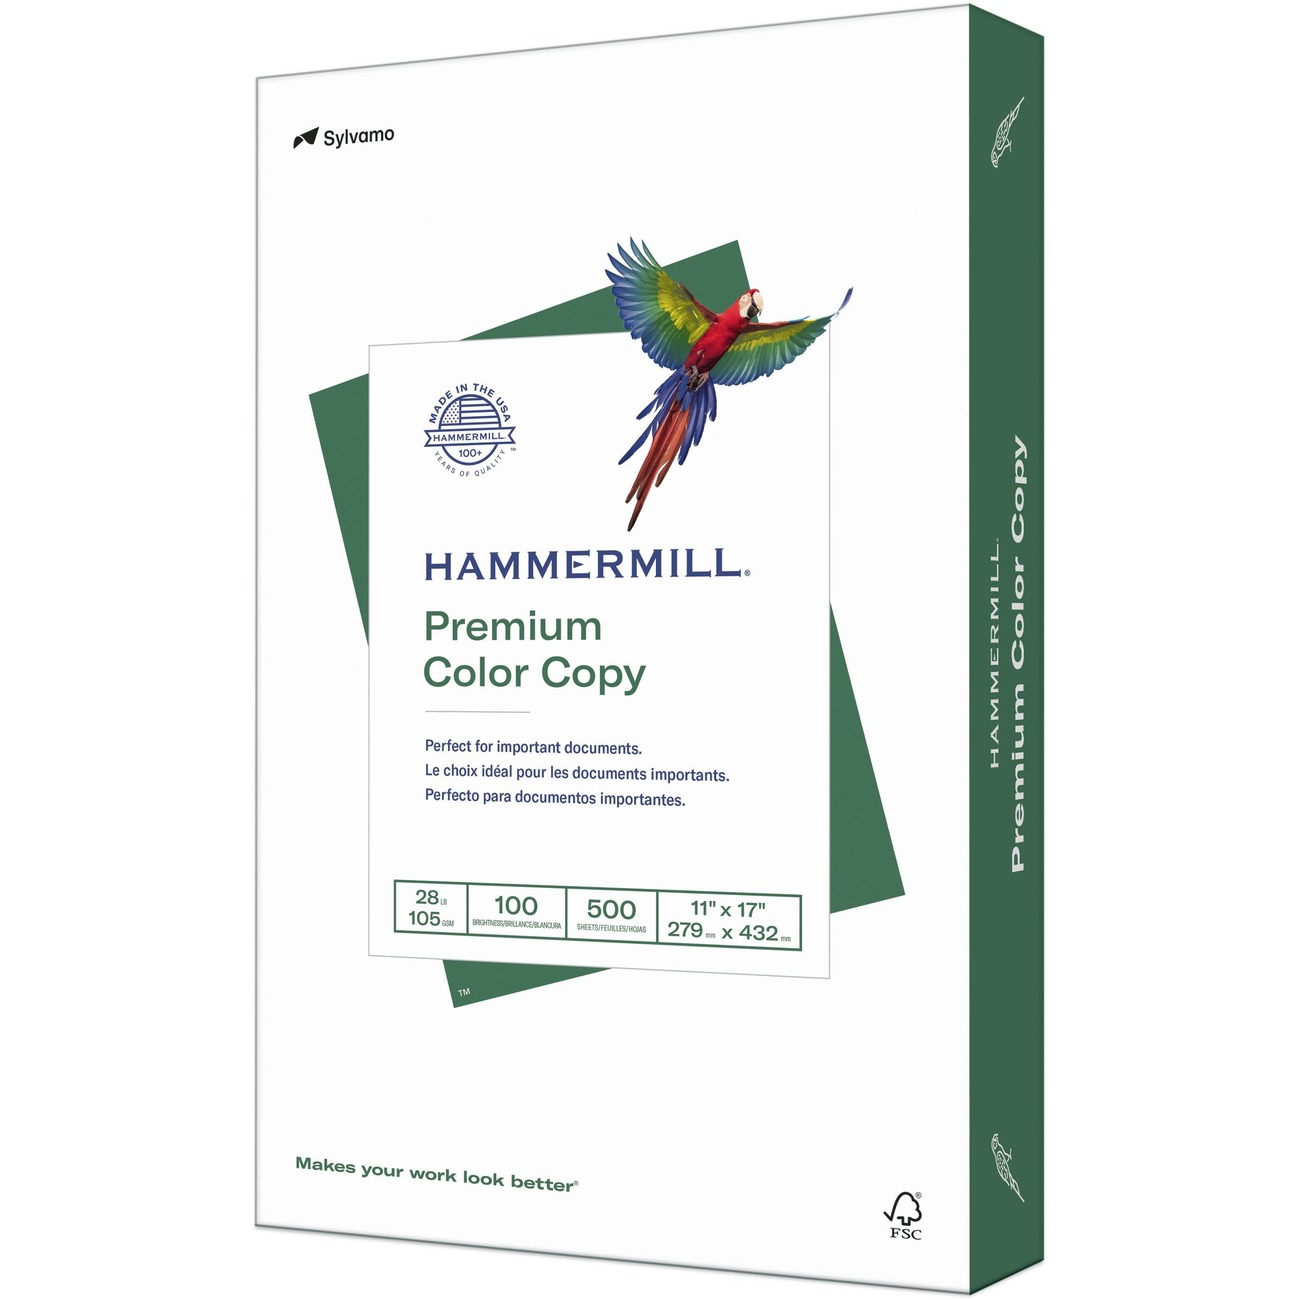 copy paper weight Premium color copy printer paper features an ultra-smooth surface with high   size: 8 1/2 x 11 paper colors: photo white paper weight: 28 lb sheets per unit:.